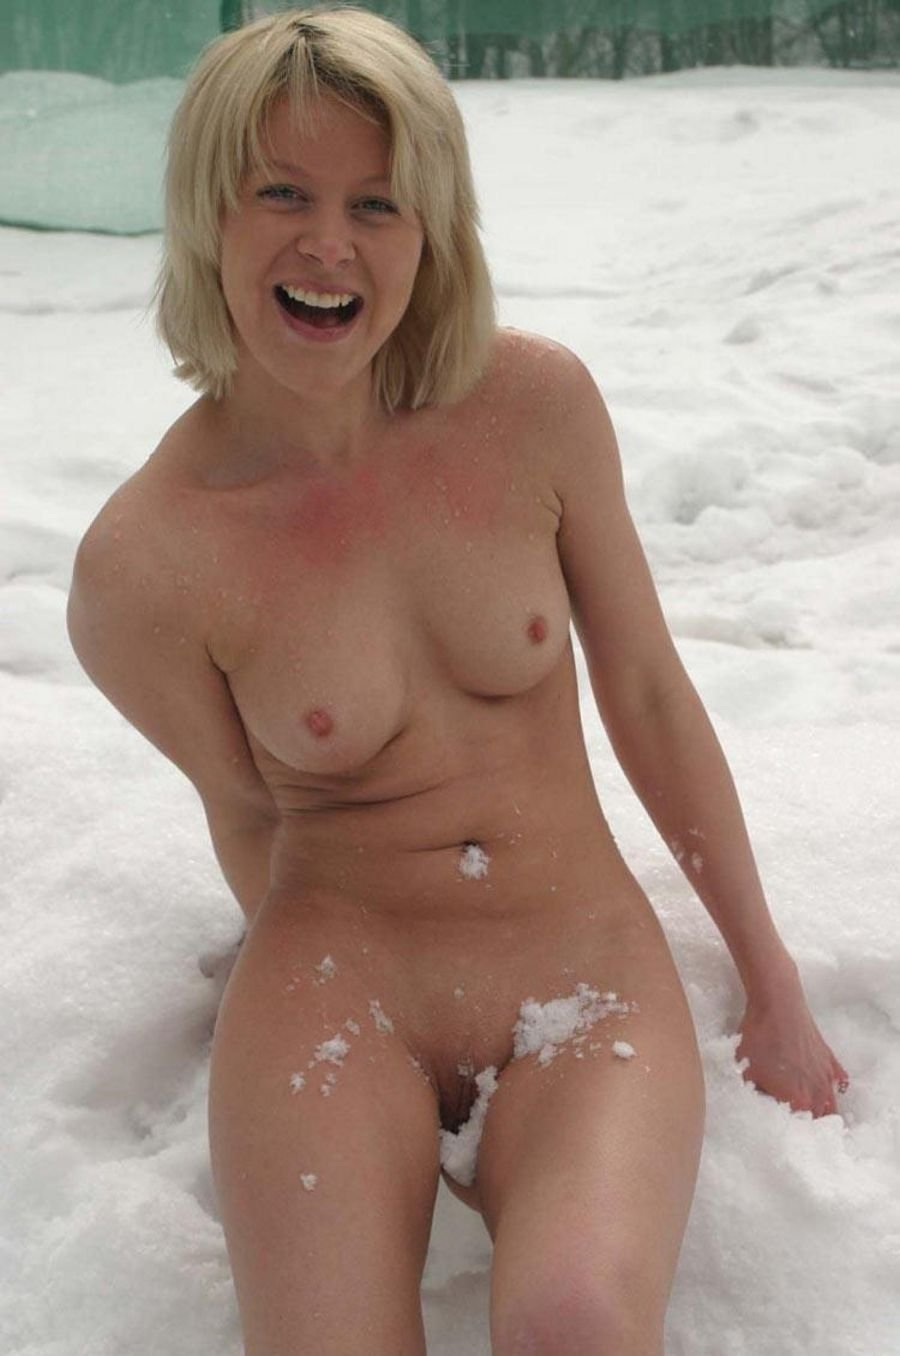 Mezigor    reccomended fakeagent creampie for stunning young amateur